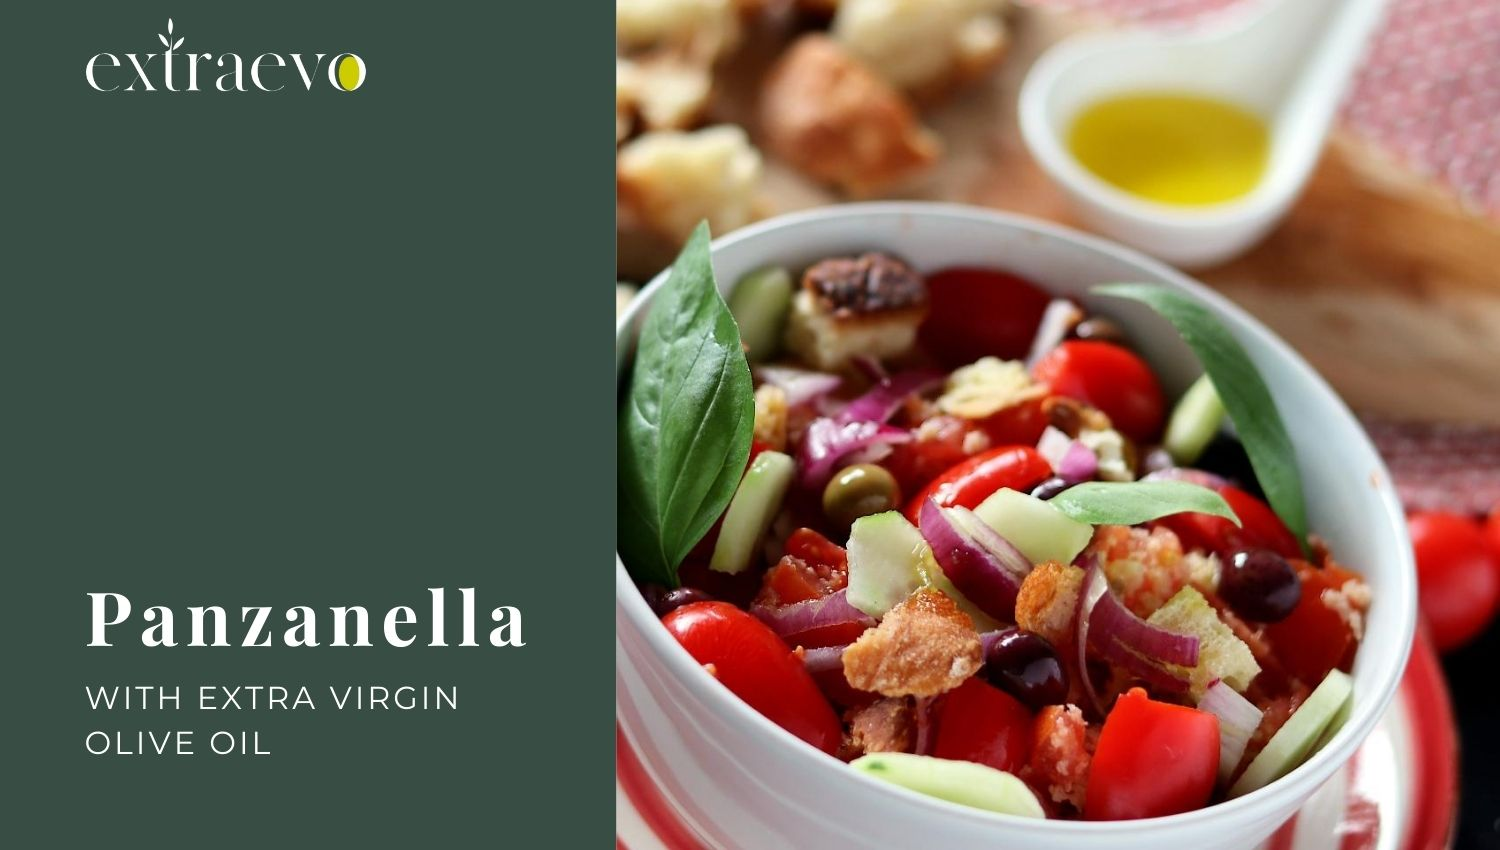 Panzanella with Extra Virgin Olive Oil